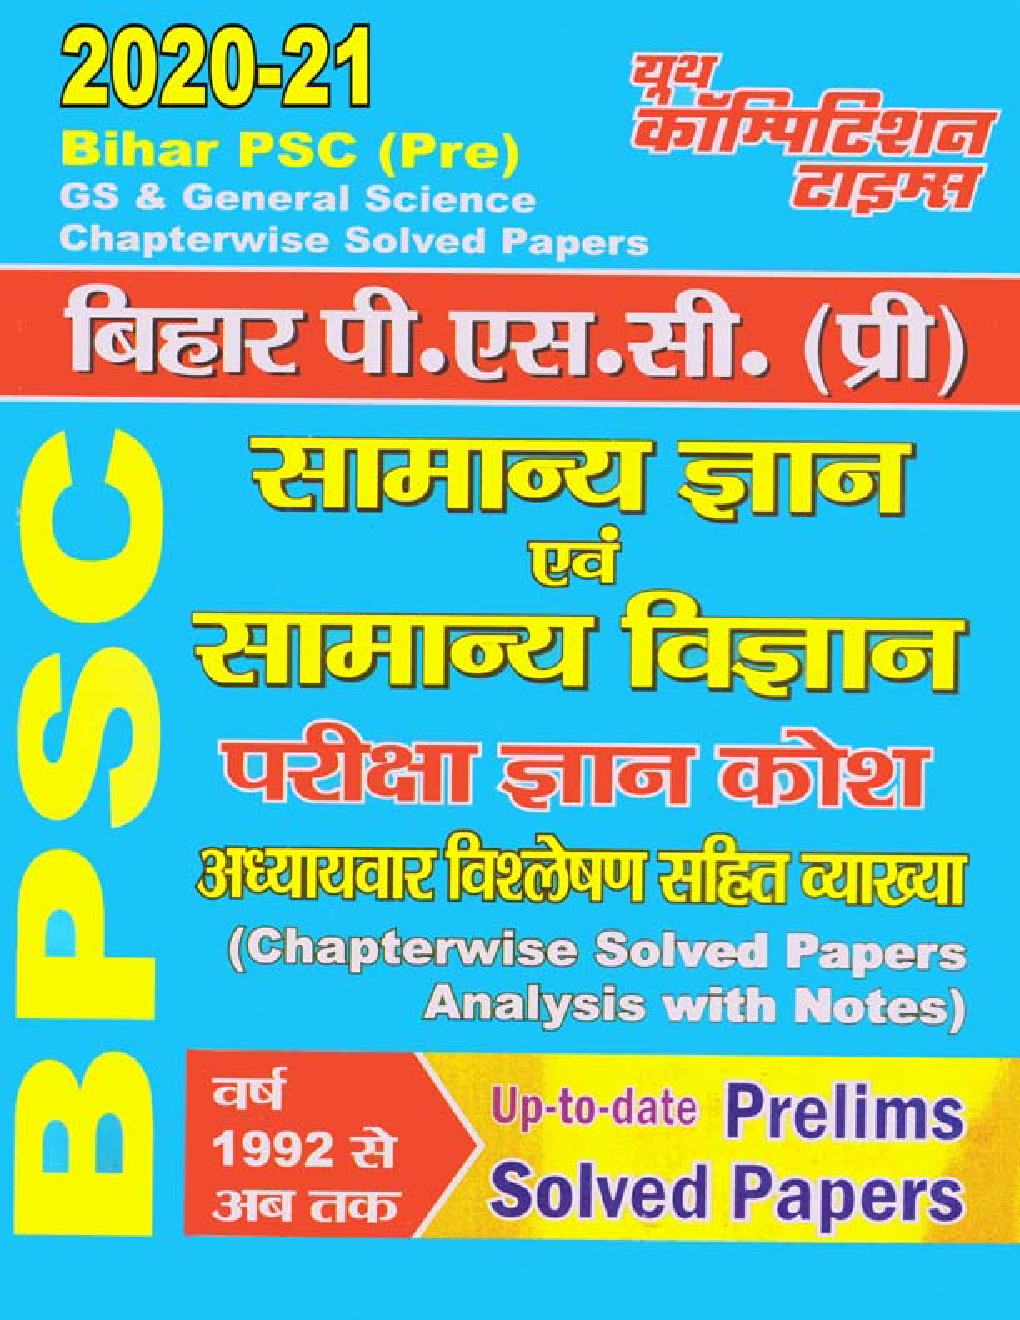 Bihar PSC (Pre) सामान्य ज्ञान व सामान्य विज्ञान परीक्षा ज्ञान कोश Chapterwise Solved Papers Analysis With Notes - Page 1